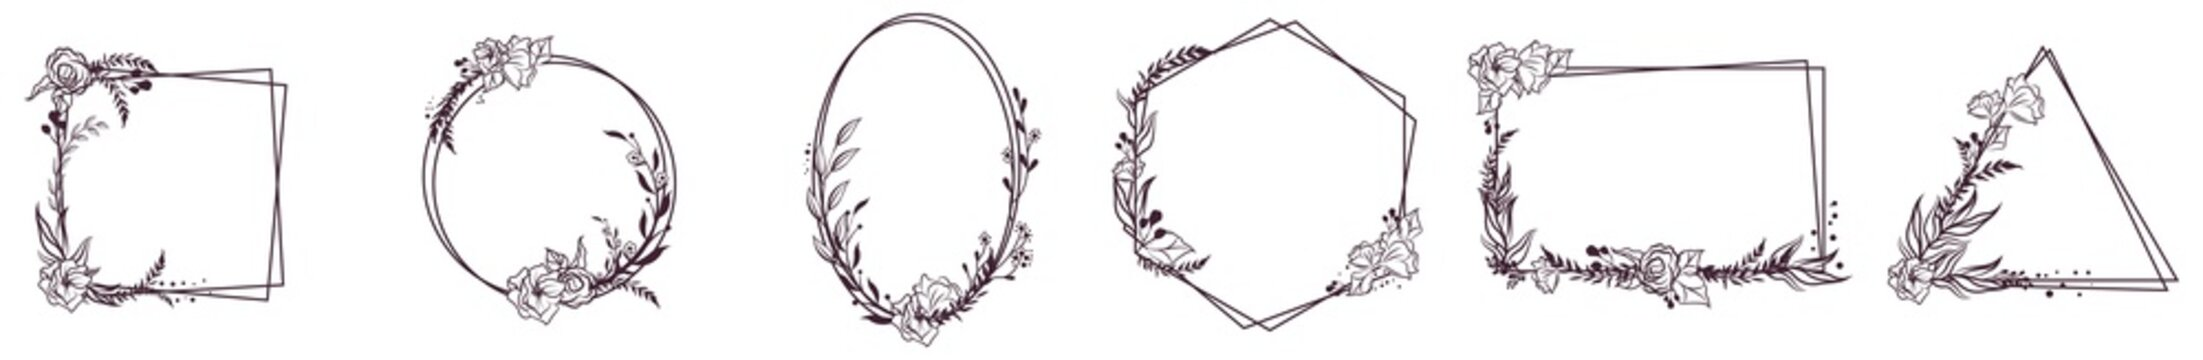 Doodle Hand Drawn Decorative Outlined Wreaths with Branches, Herbs, Plants, Leaves and Flowers, Florals. Vector Illustration. Frames, Circles.